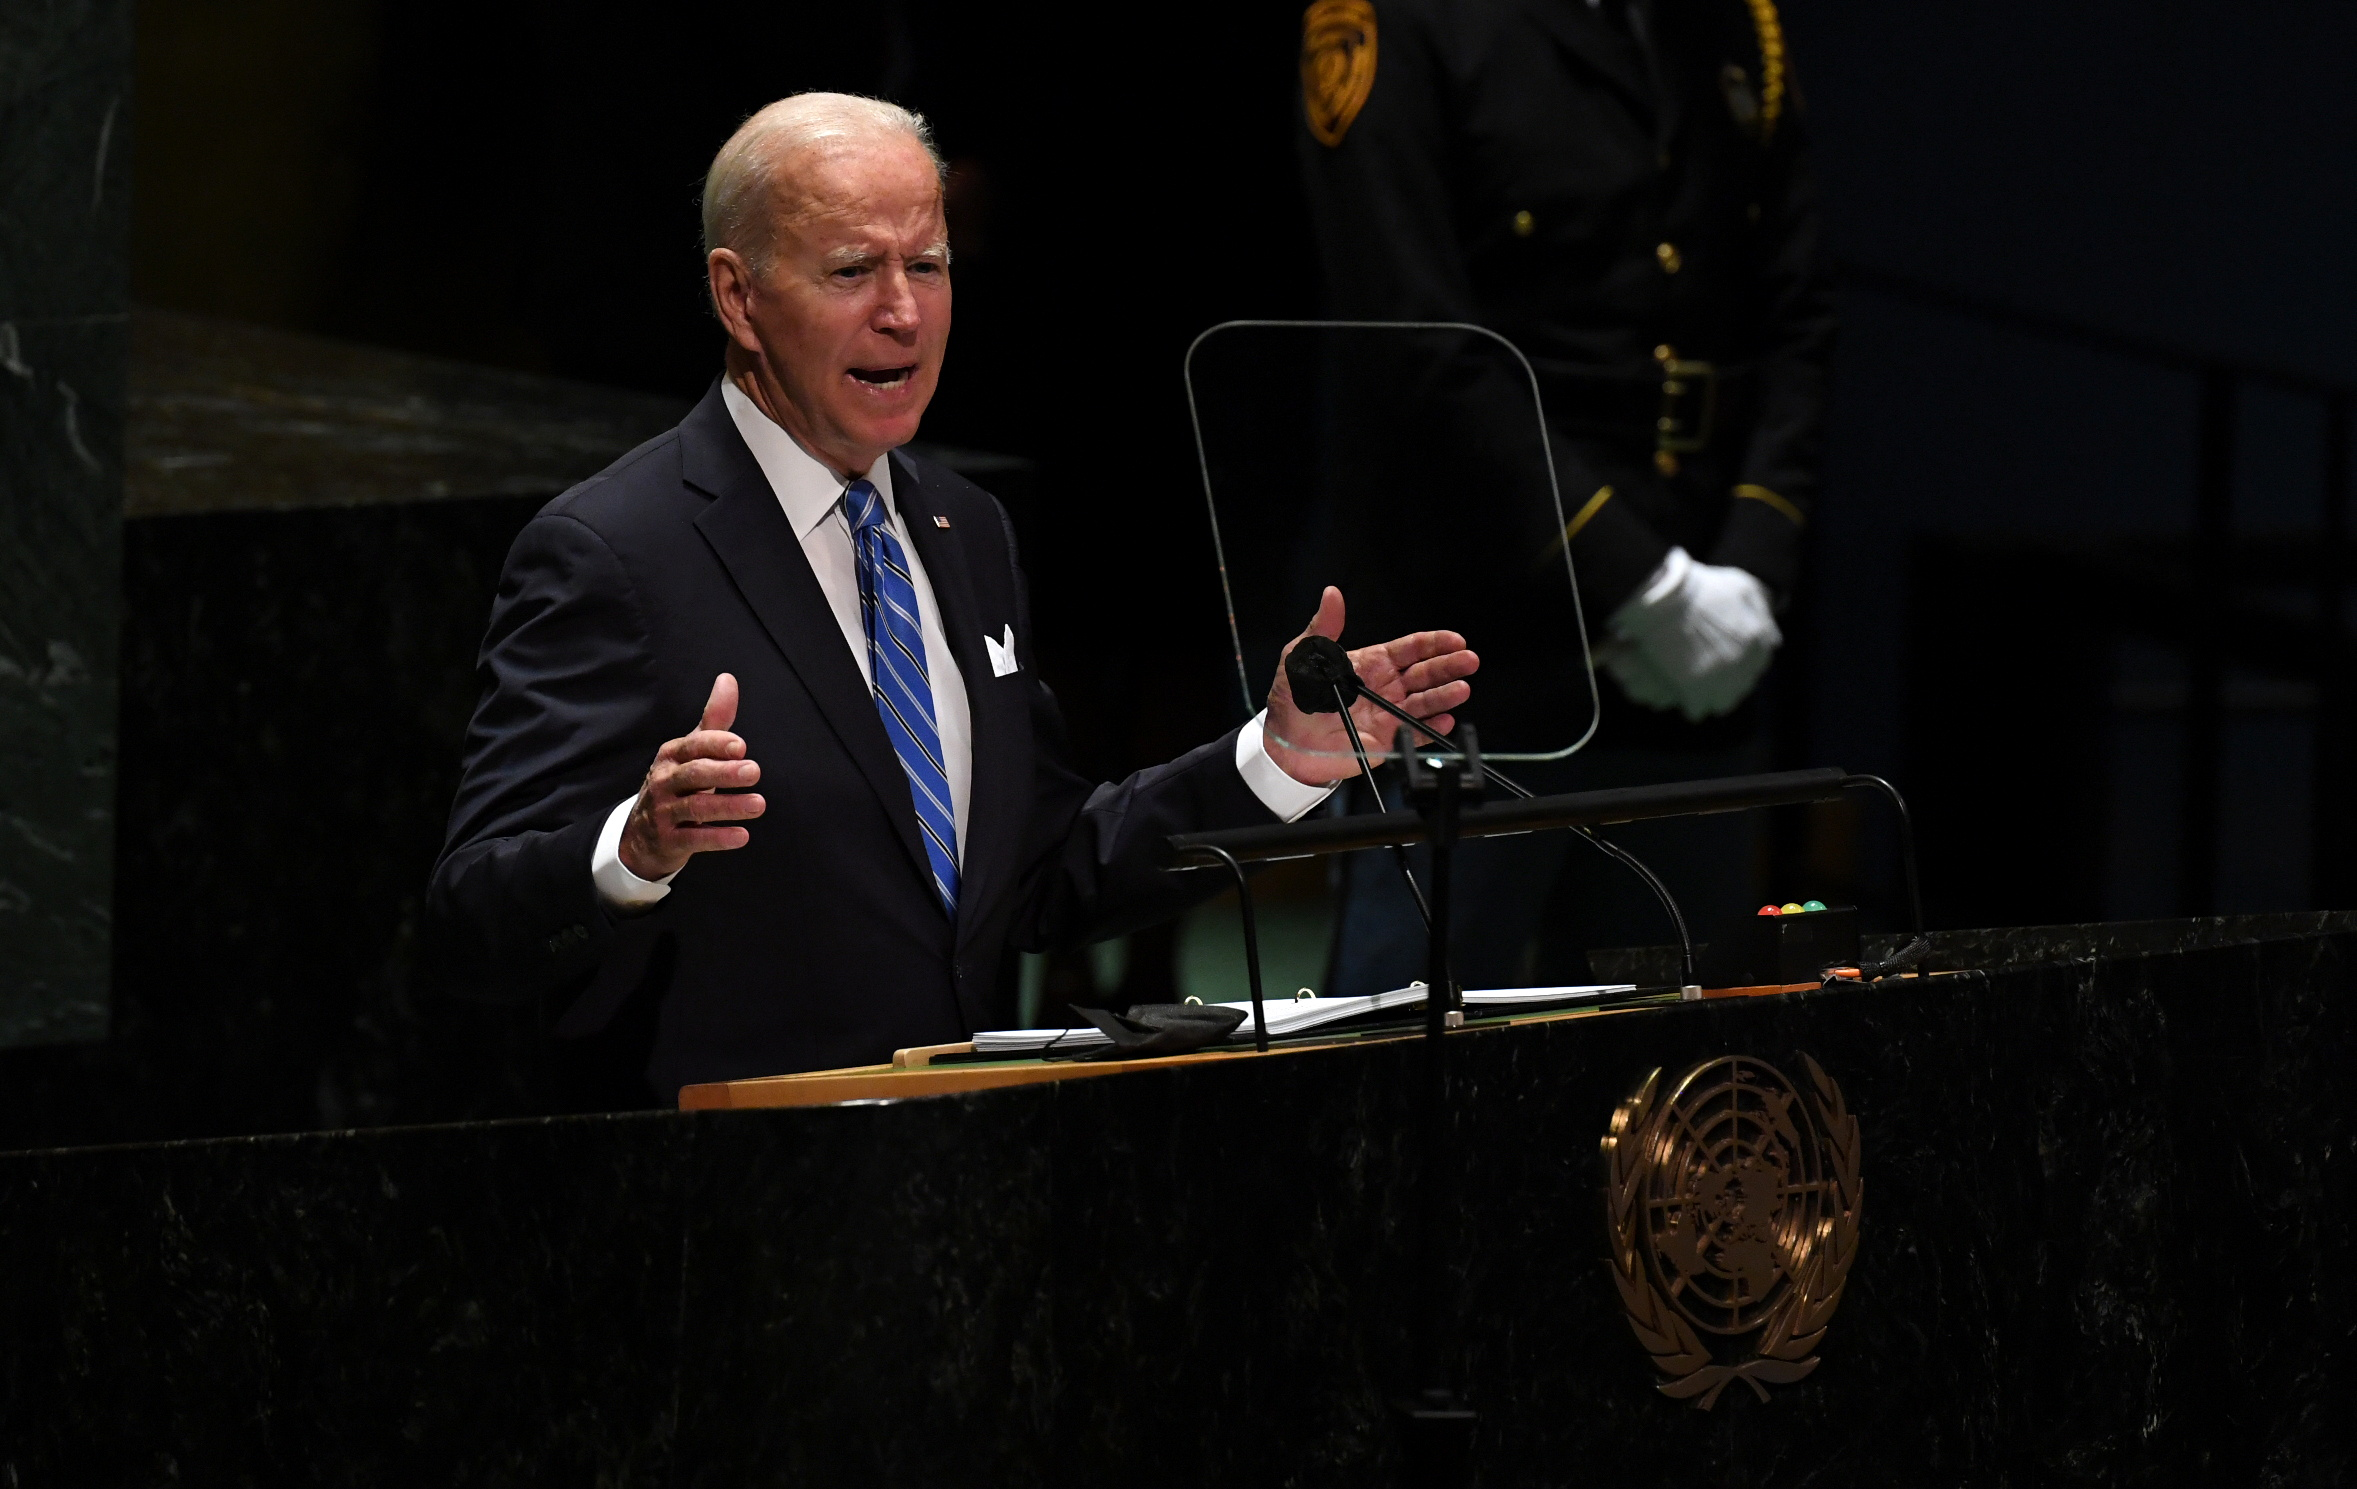 U.S. President Joe Biden speaks during the 76th Session of the General Assembly at UN Headquarters in New York on September 21, 2021. Timothy A. Clary/Pool via REUTERS